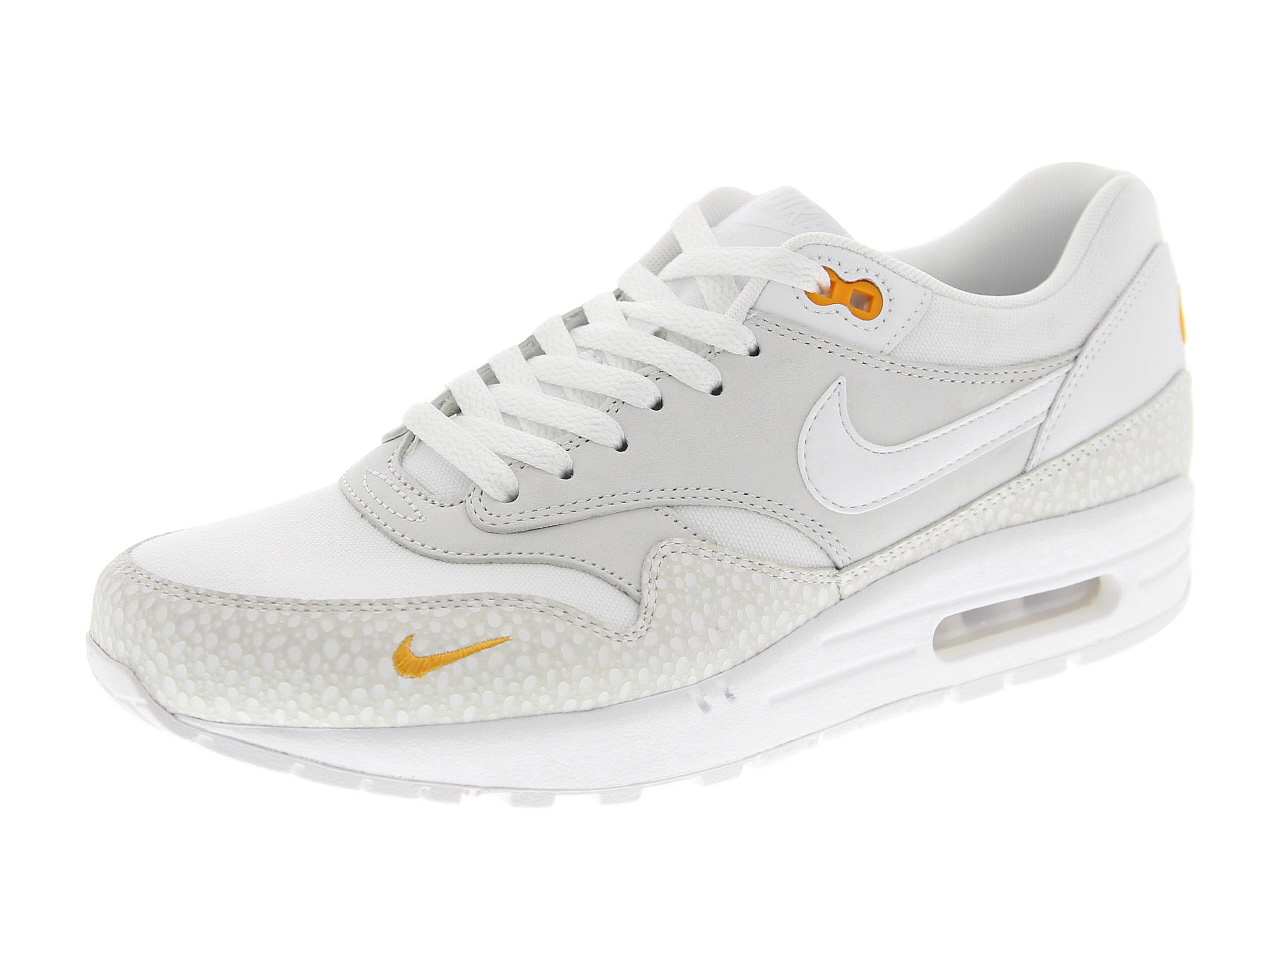 NIKE AIR MAX 1 PRM (512033-110) WHITE/WHITE-KUMQUAT